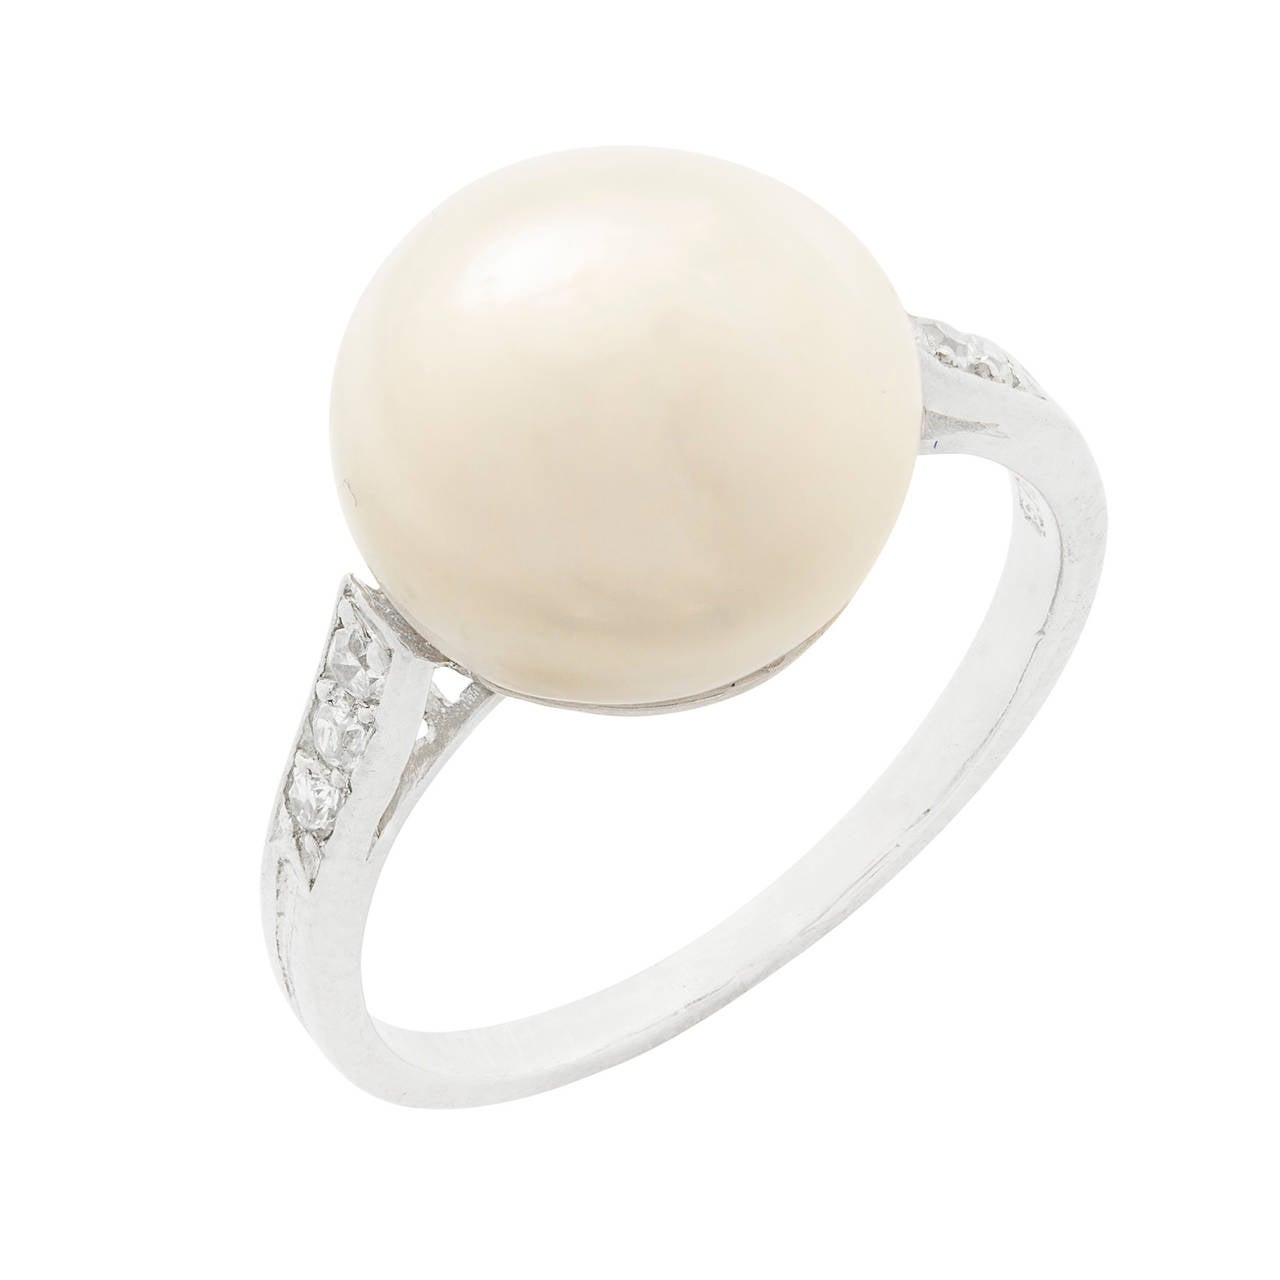 A bouton shaped natural pearl ring with diamond set shoulders, the white bouton shaped pearl measuring approximately 10.5 mm in diameter to the centre of three old brilliant-cut diamond-set to each shoulder.